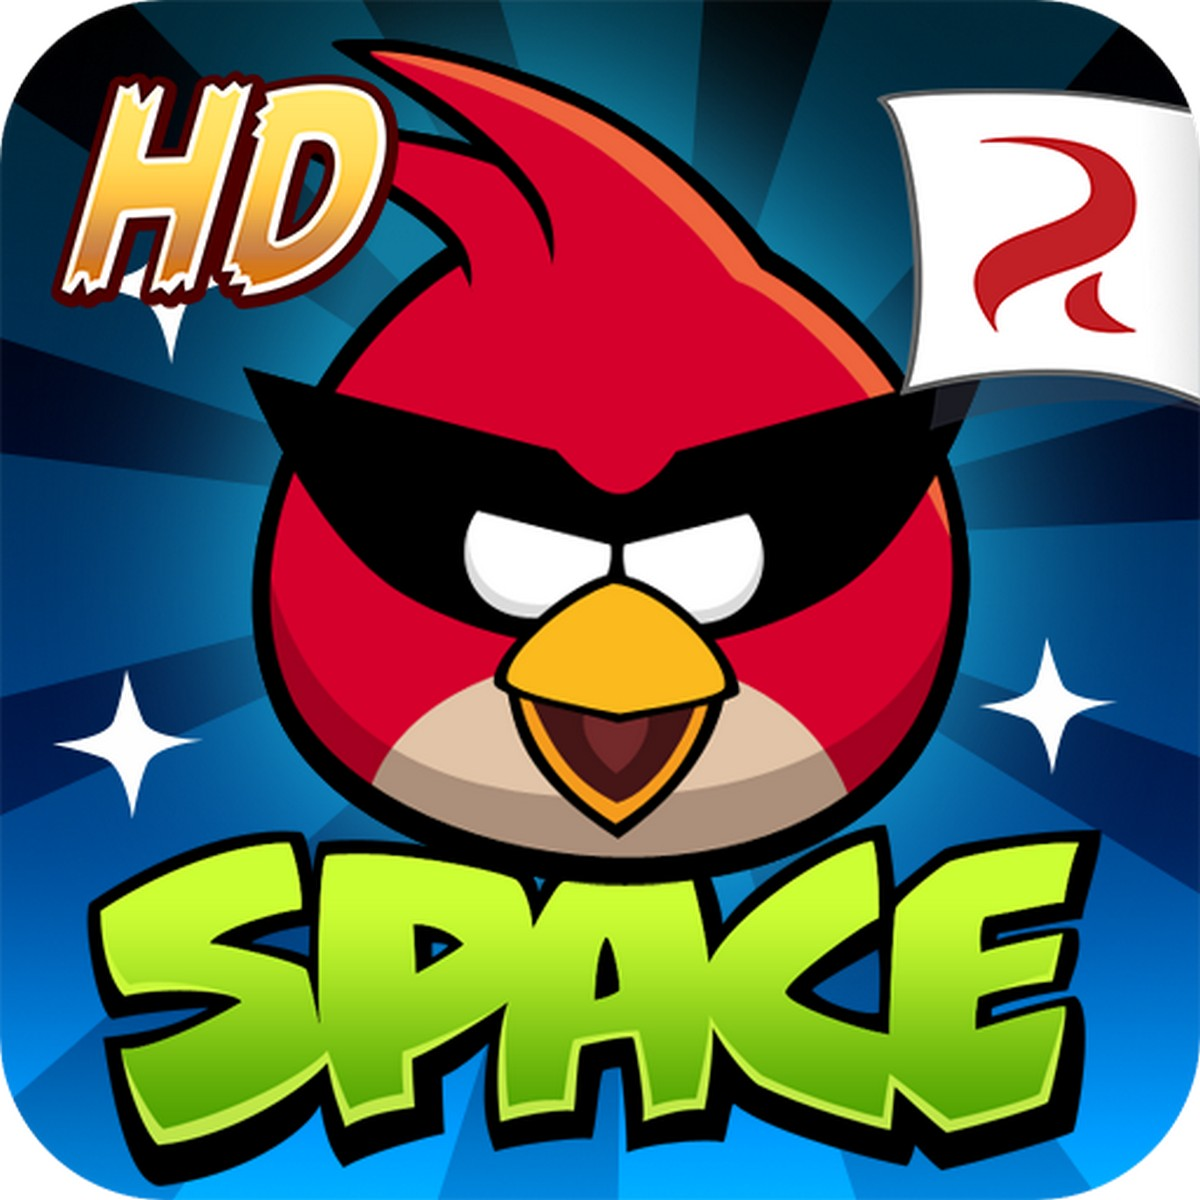 Angry Birds Space HD APK MOD v2.2.14 (Boosters ilimitados) 1